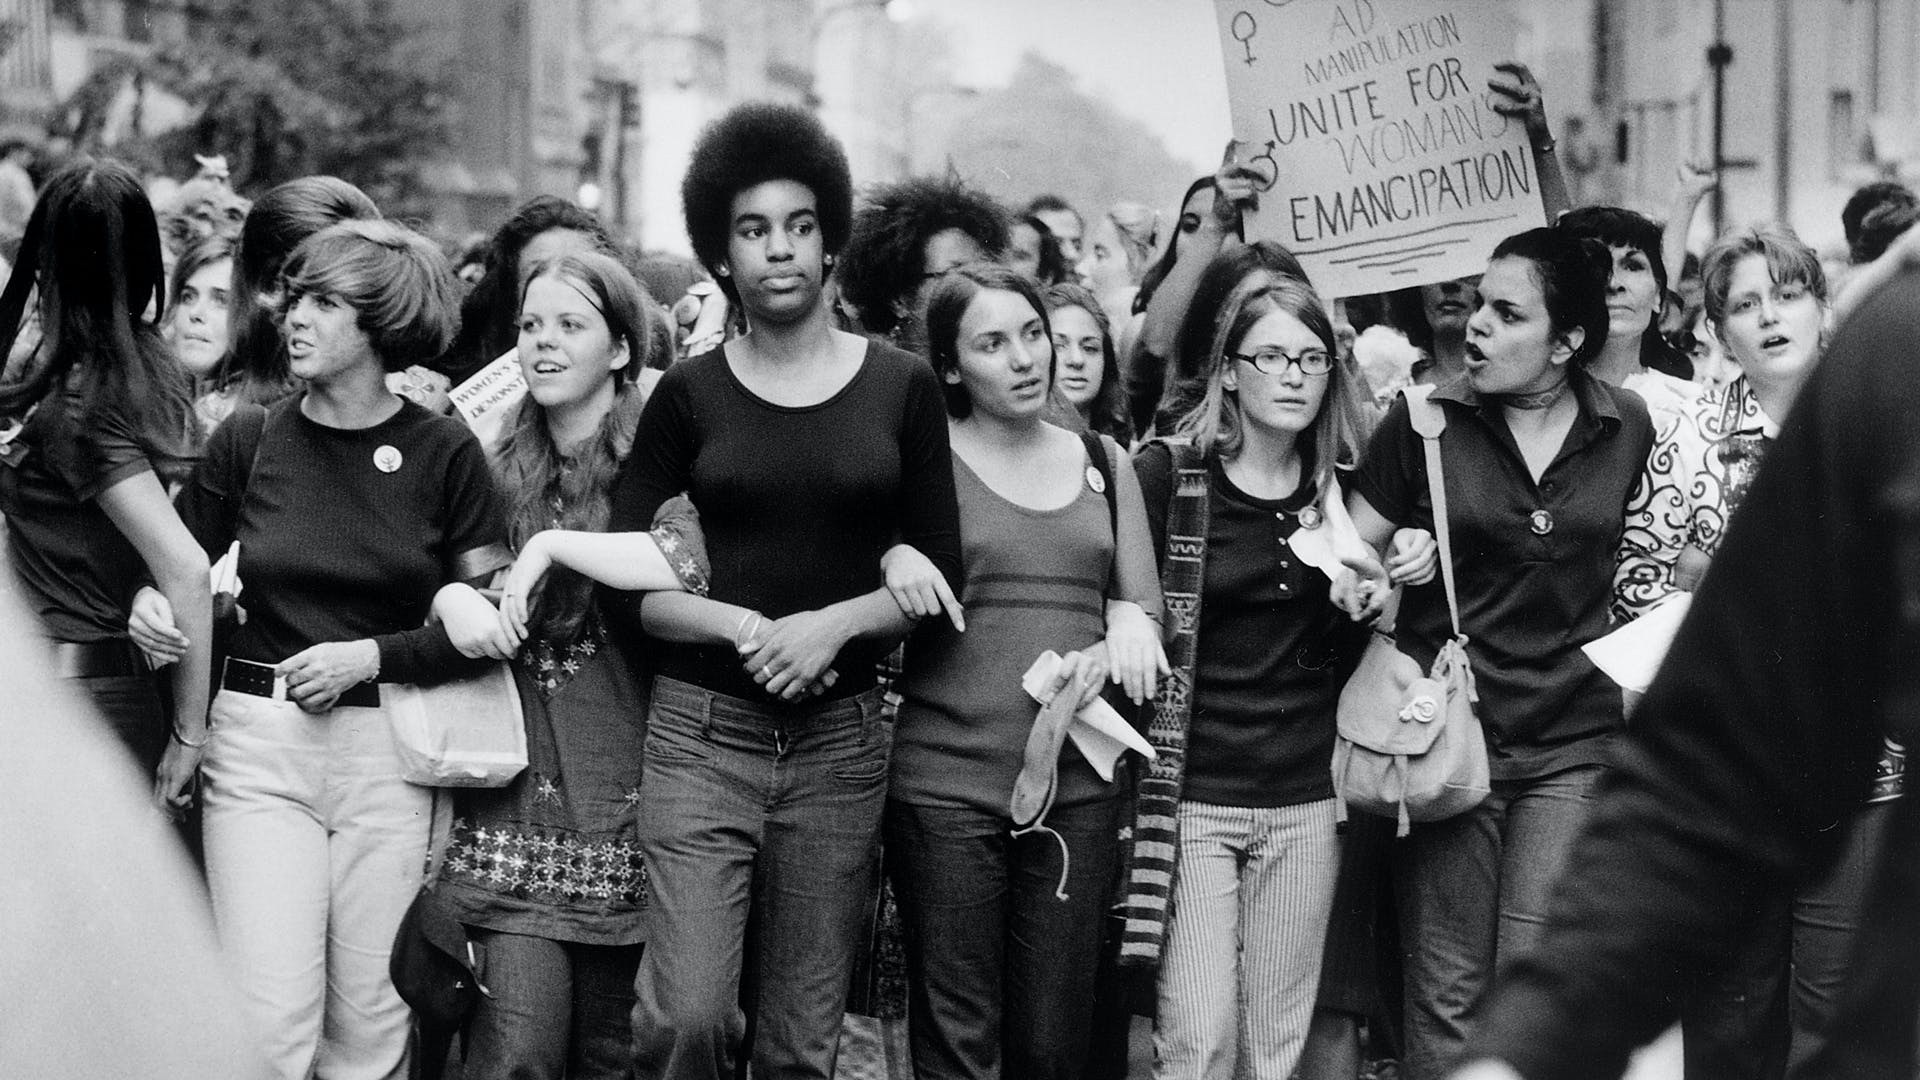 Image of activists marching for women's emancipation